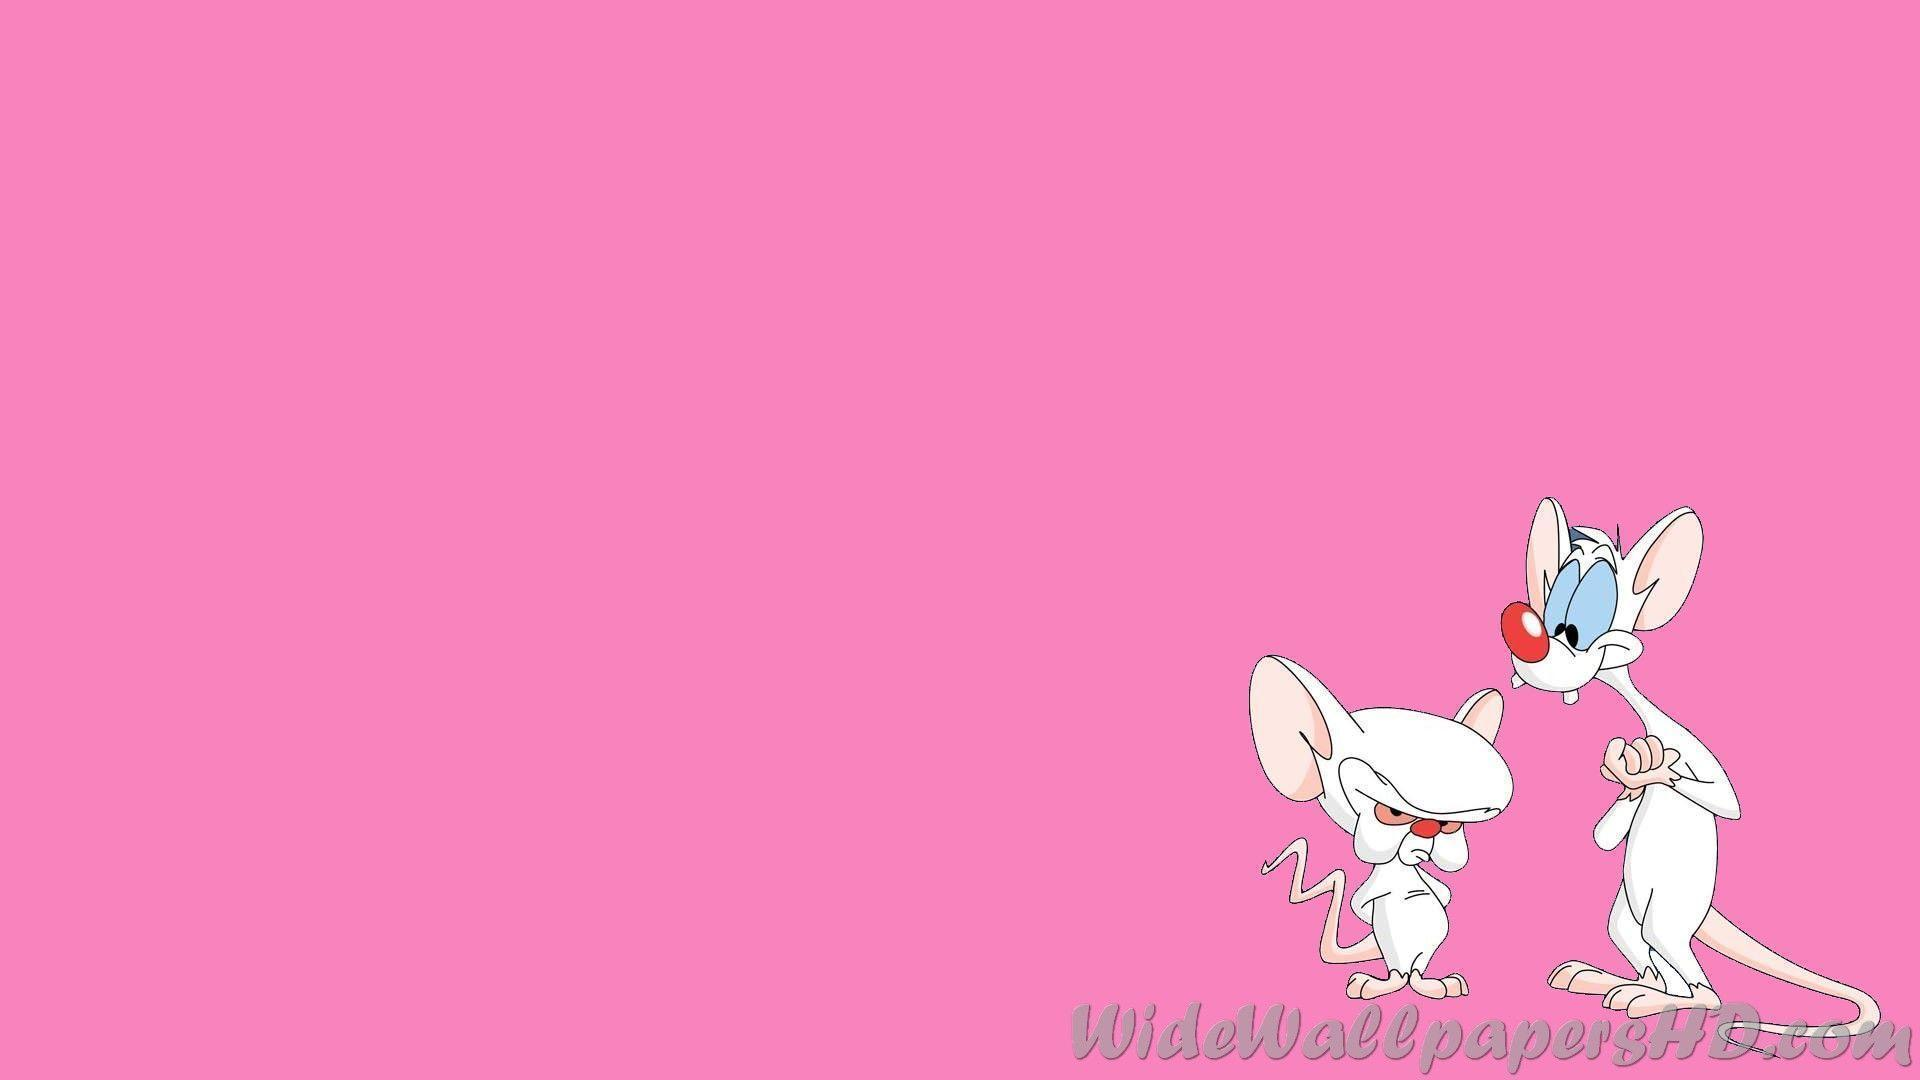 Pinky Wallpapers - Wallpaper Cave